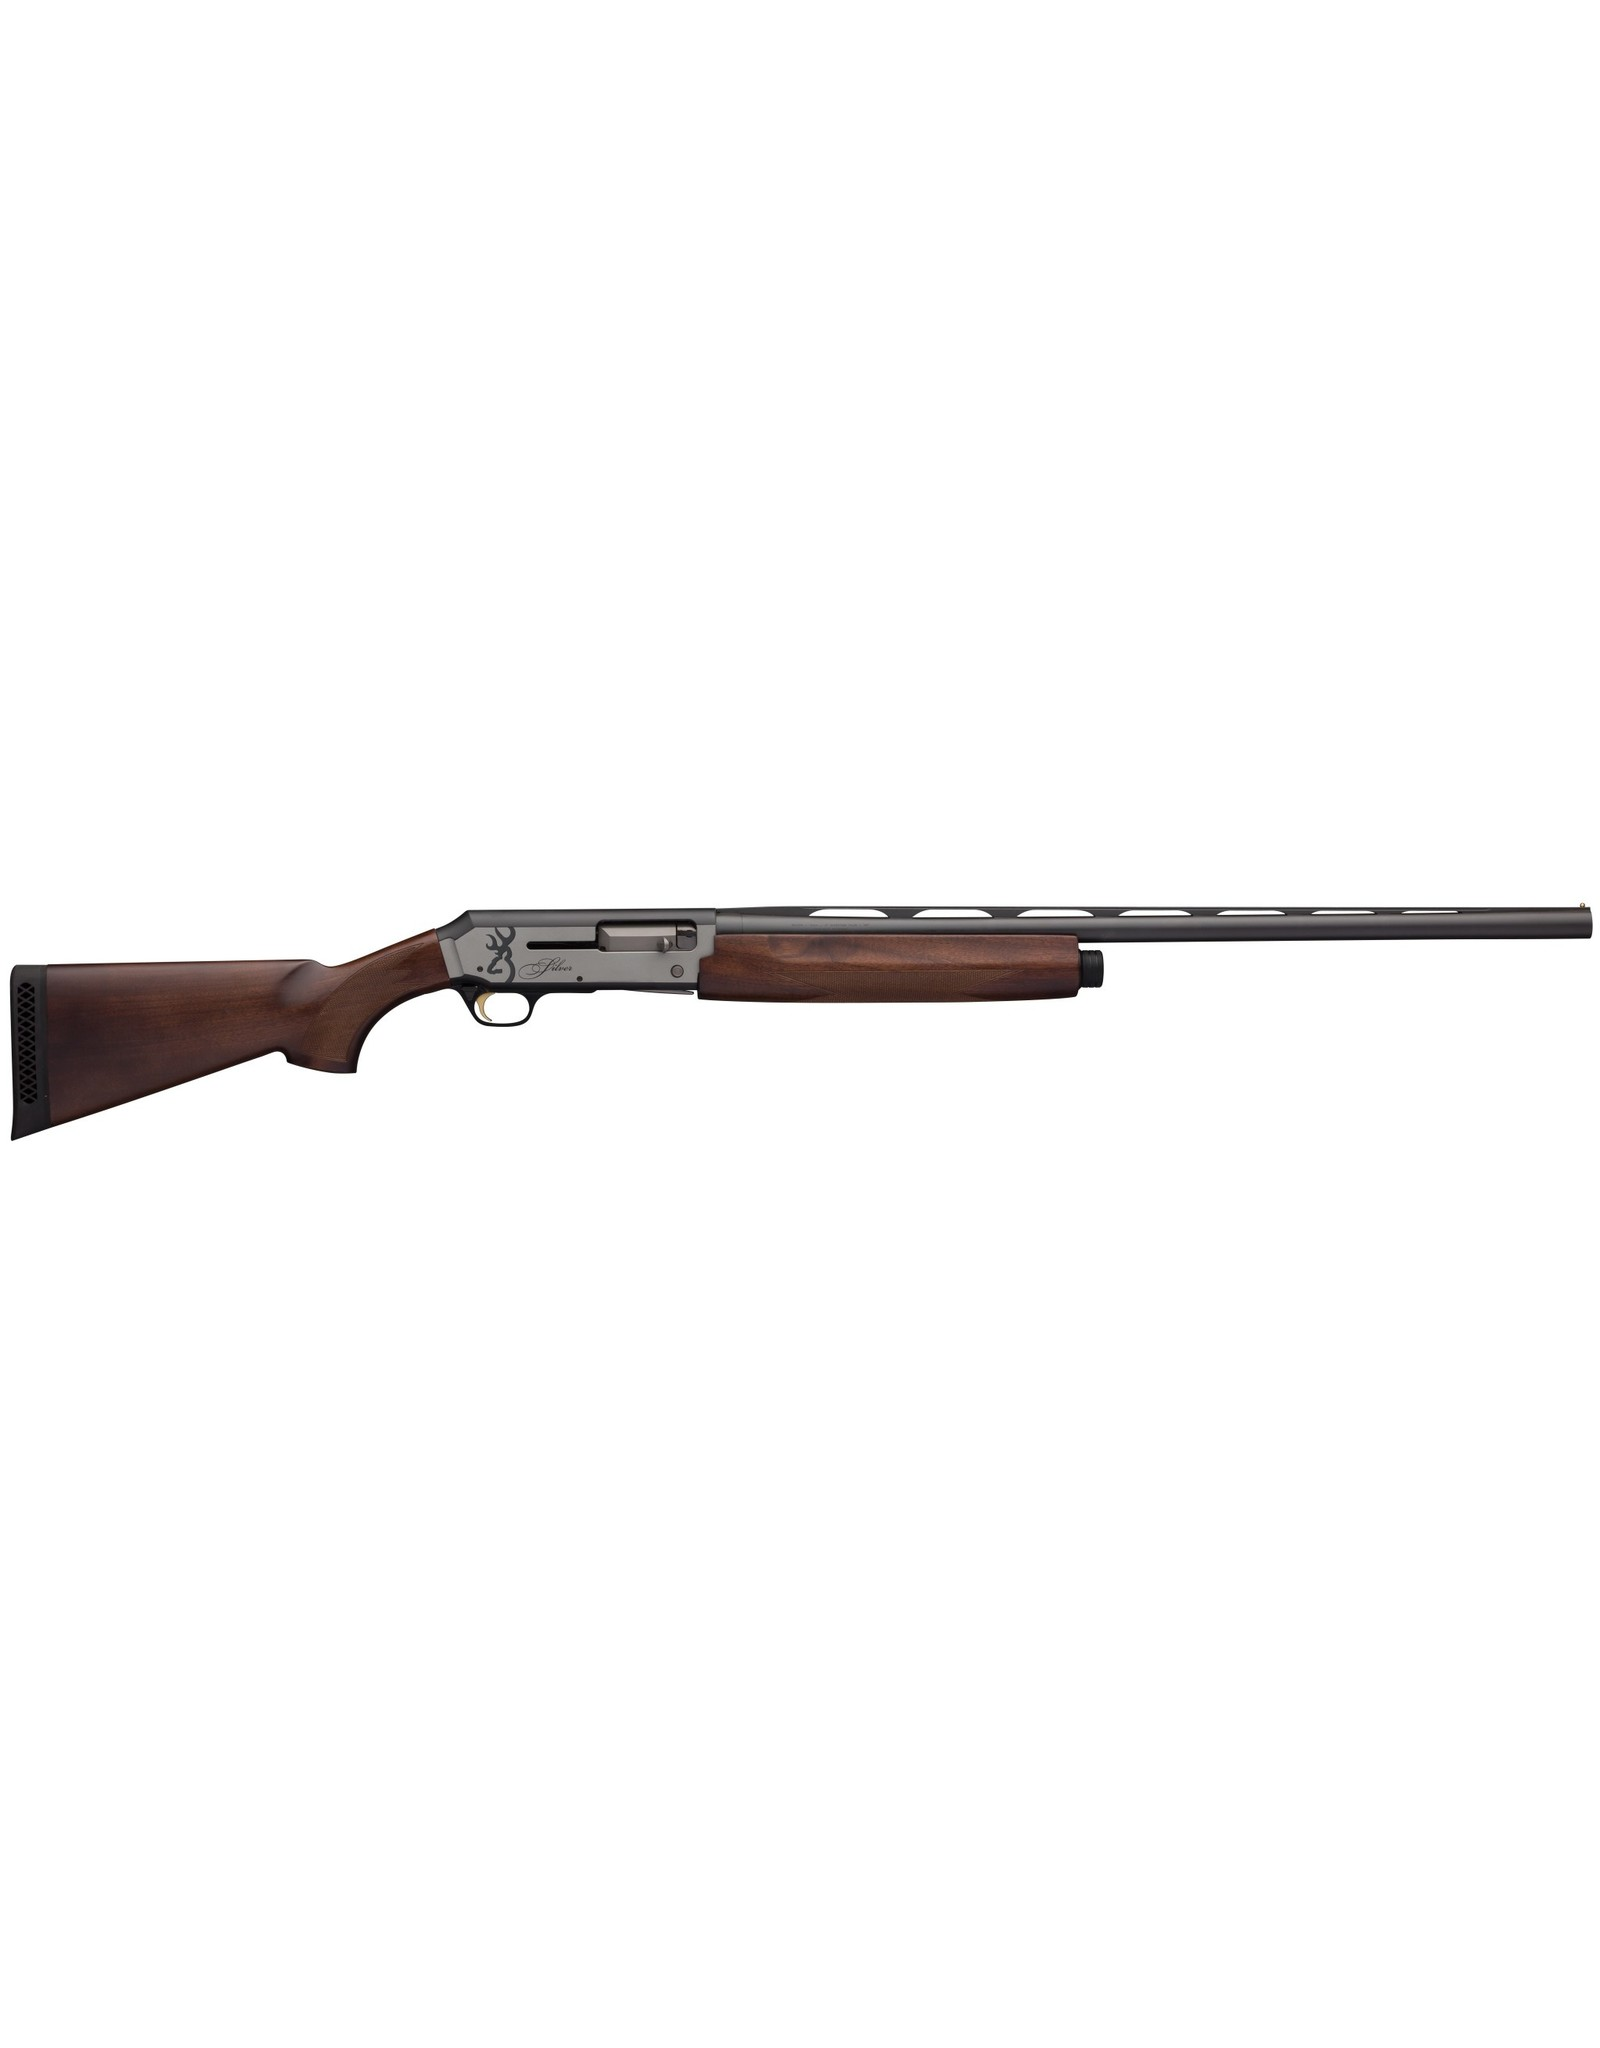 "Browning Browning Silver Field 12 ga 28"" bbl"